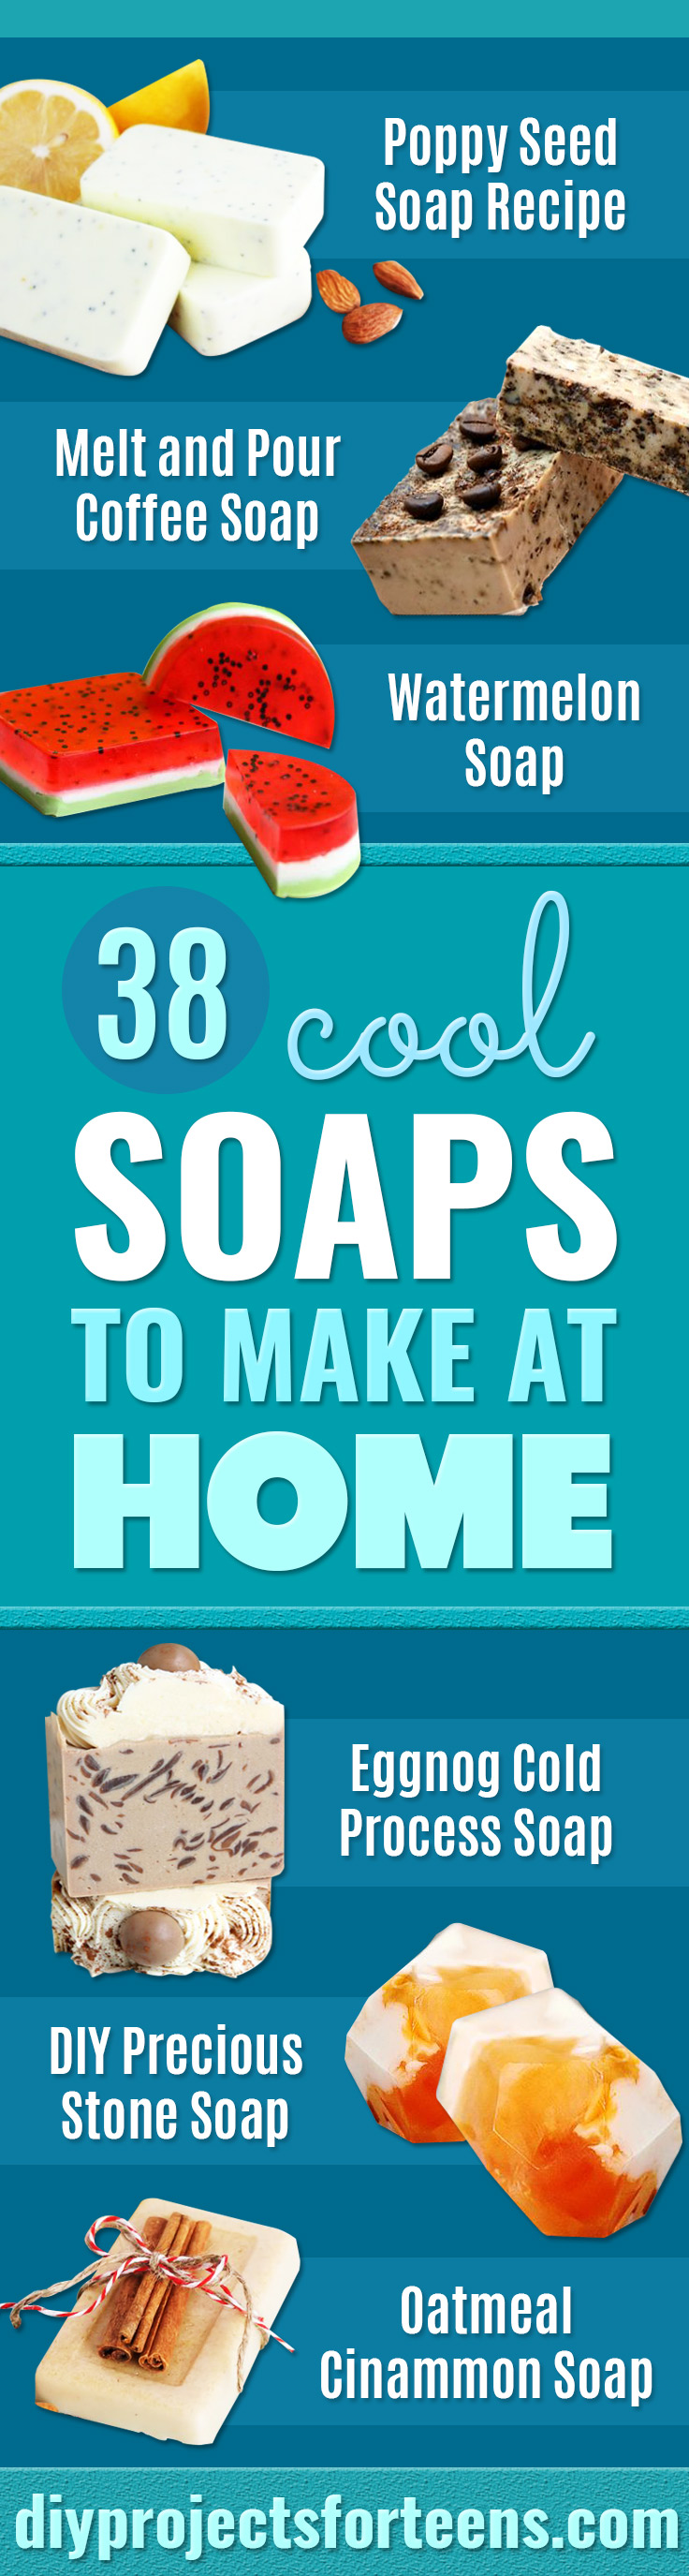 Cool Soaps To Make At Home - Grapefruit Mint Poppyseed Bars - DIY Soap Recipes and Ideas - Best Soap Tutorials for Soap Making Without Lye - Easy Cold Process Melt and Pour Tips for Beginners - Crockpot, Essential Oils, Homemade Natural Soaps and Products - Creative Crafts and DIY for Teens, Kids and Adults #soapmaking #diygifts #soap #soaprecipes